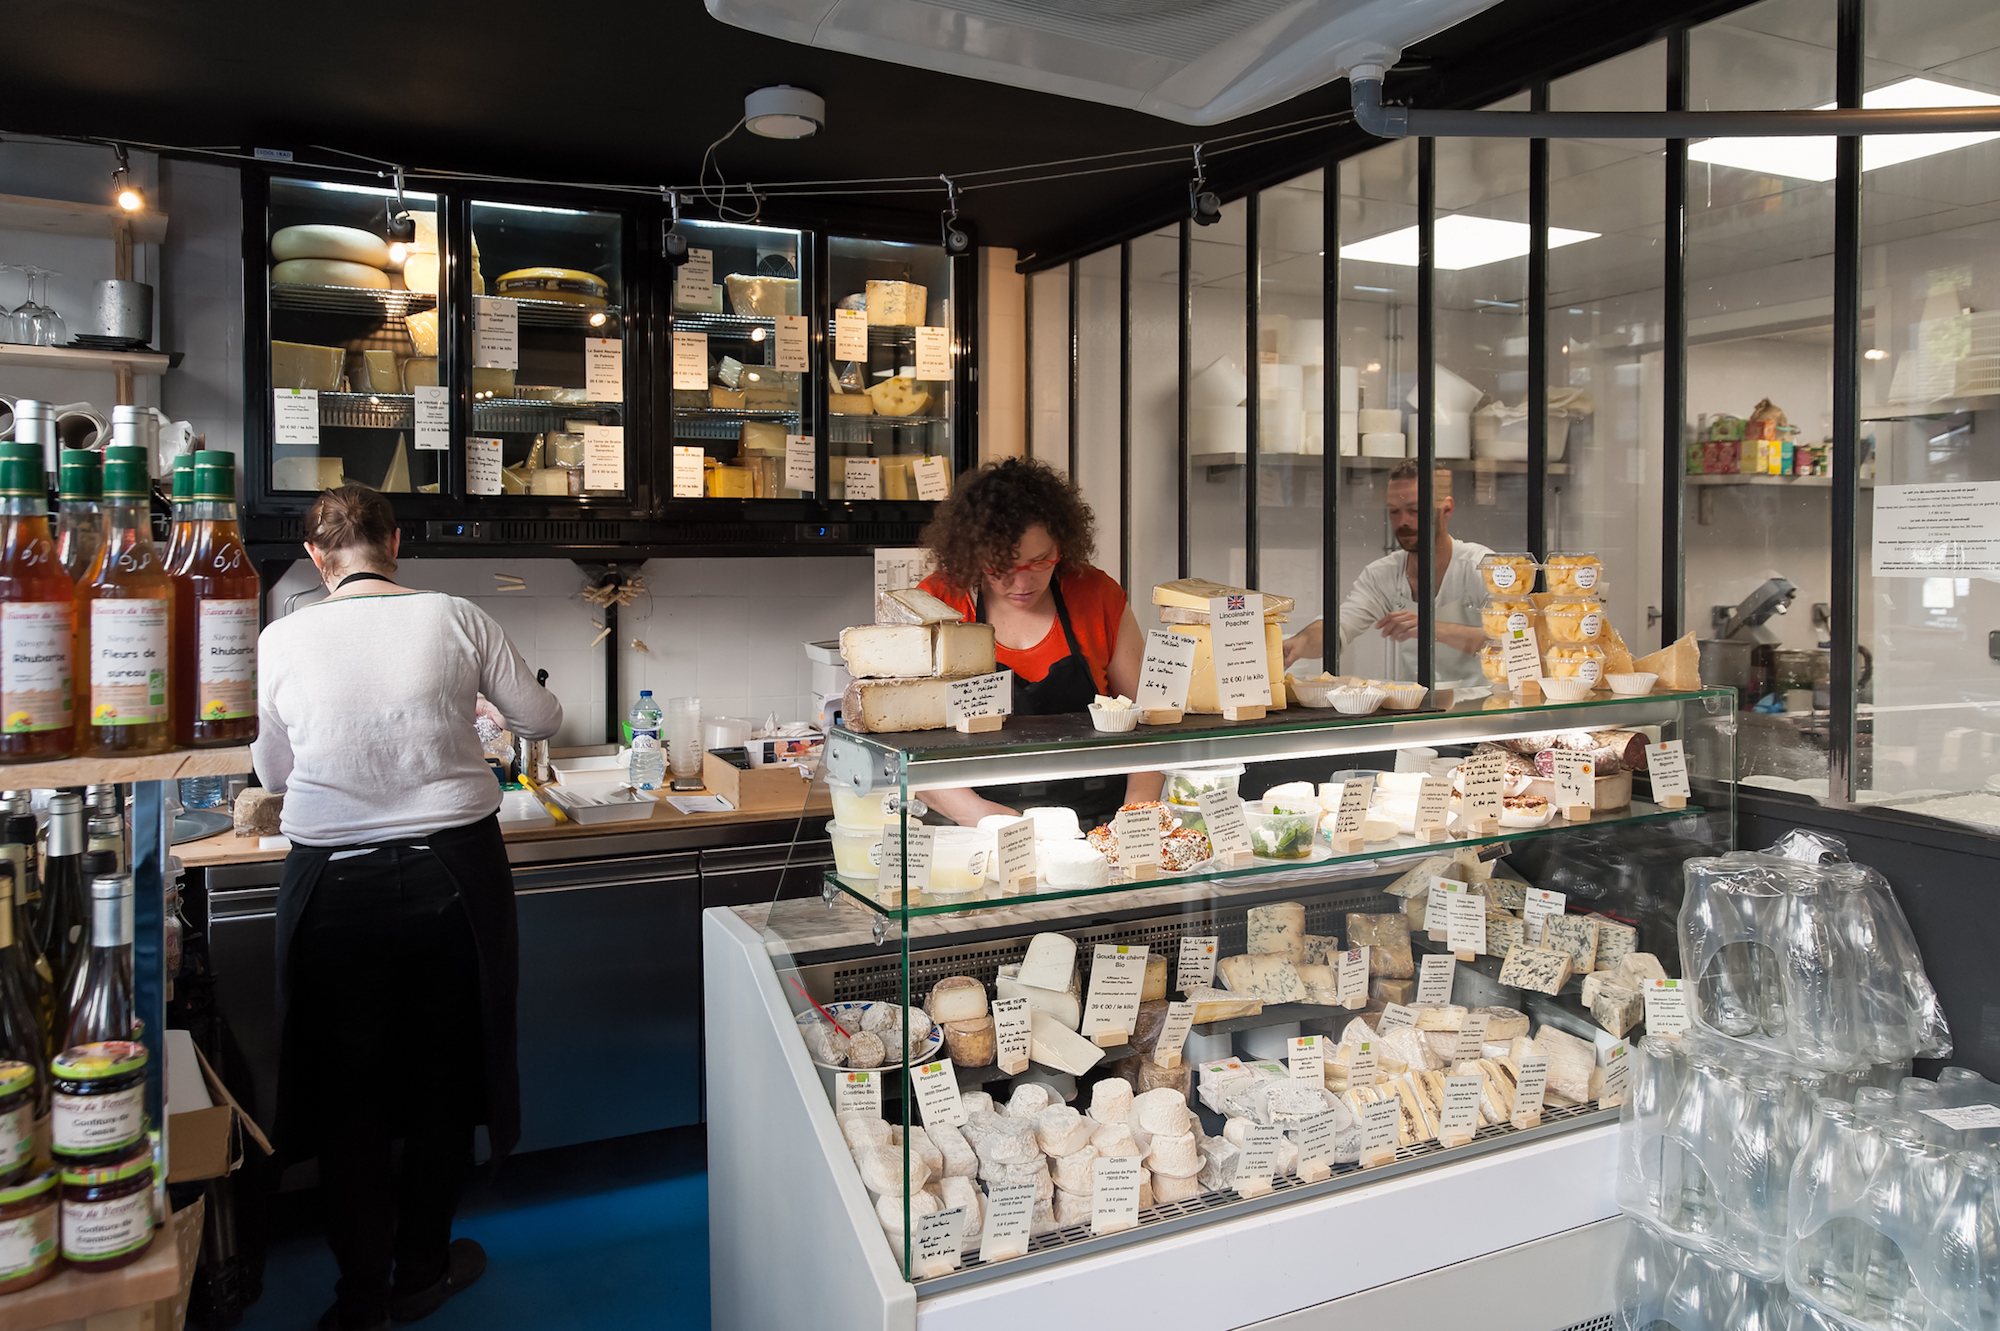 HiP Paris Blog discovers Paris' first cheese dairy La Laiterie de Paris, and inside the cheese shop is a counter packed with cheeses made right here in the back.